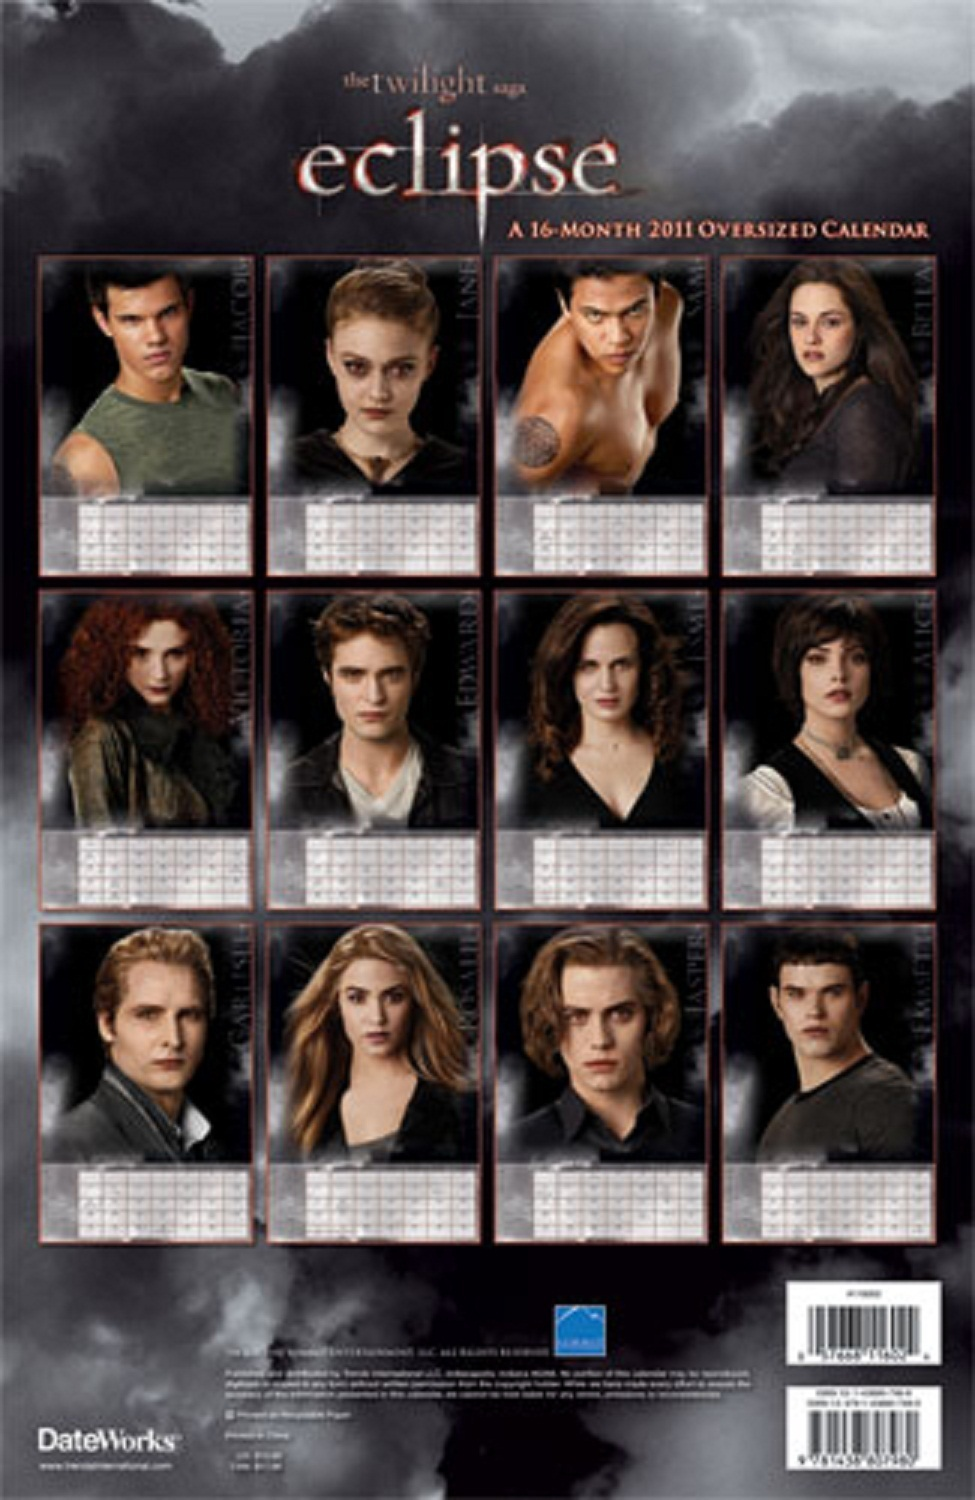 NEW Eclipse Calendar With Eclipse Promo Pictures